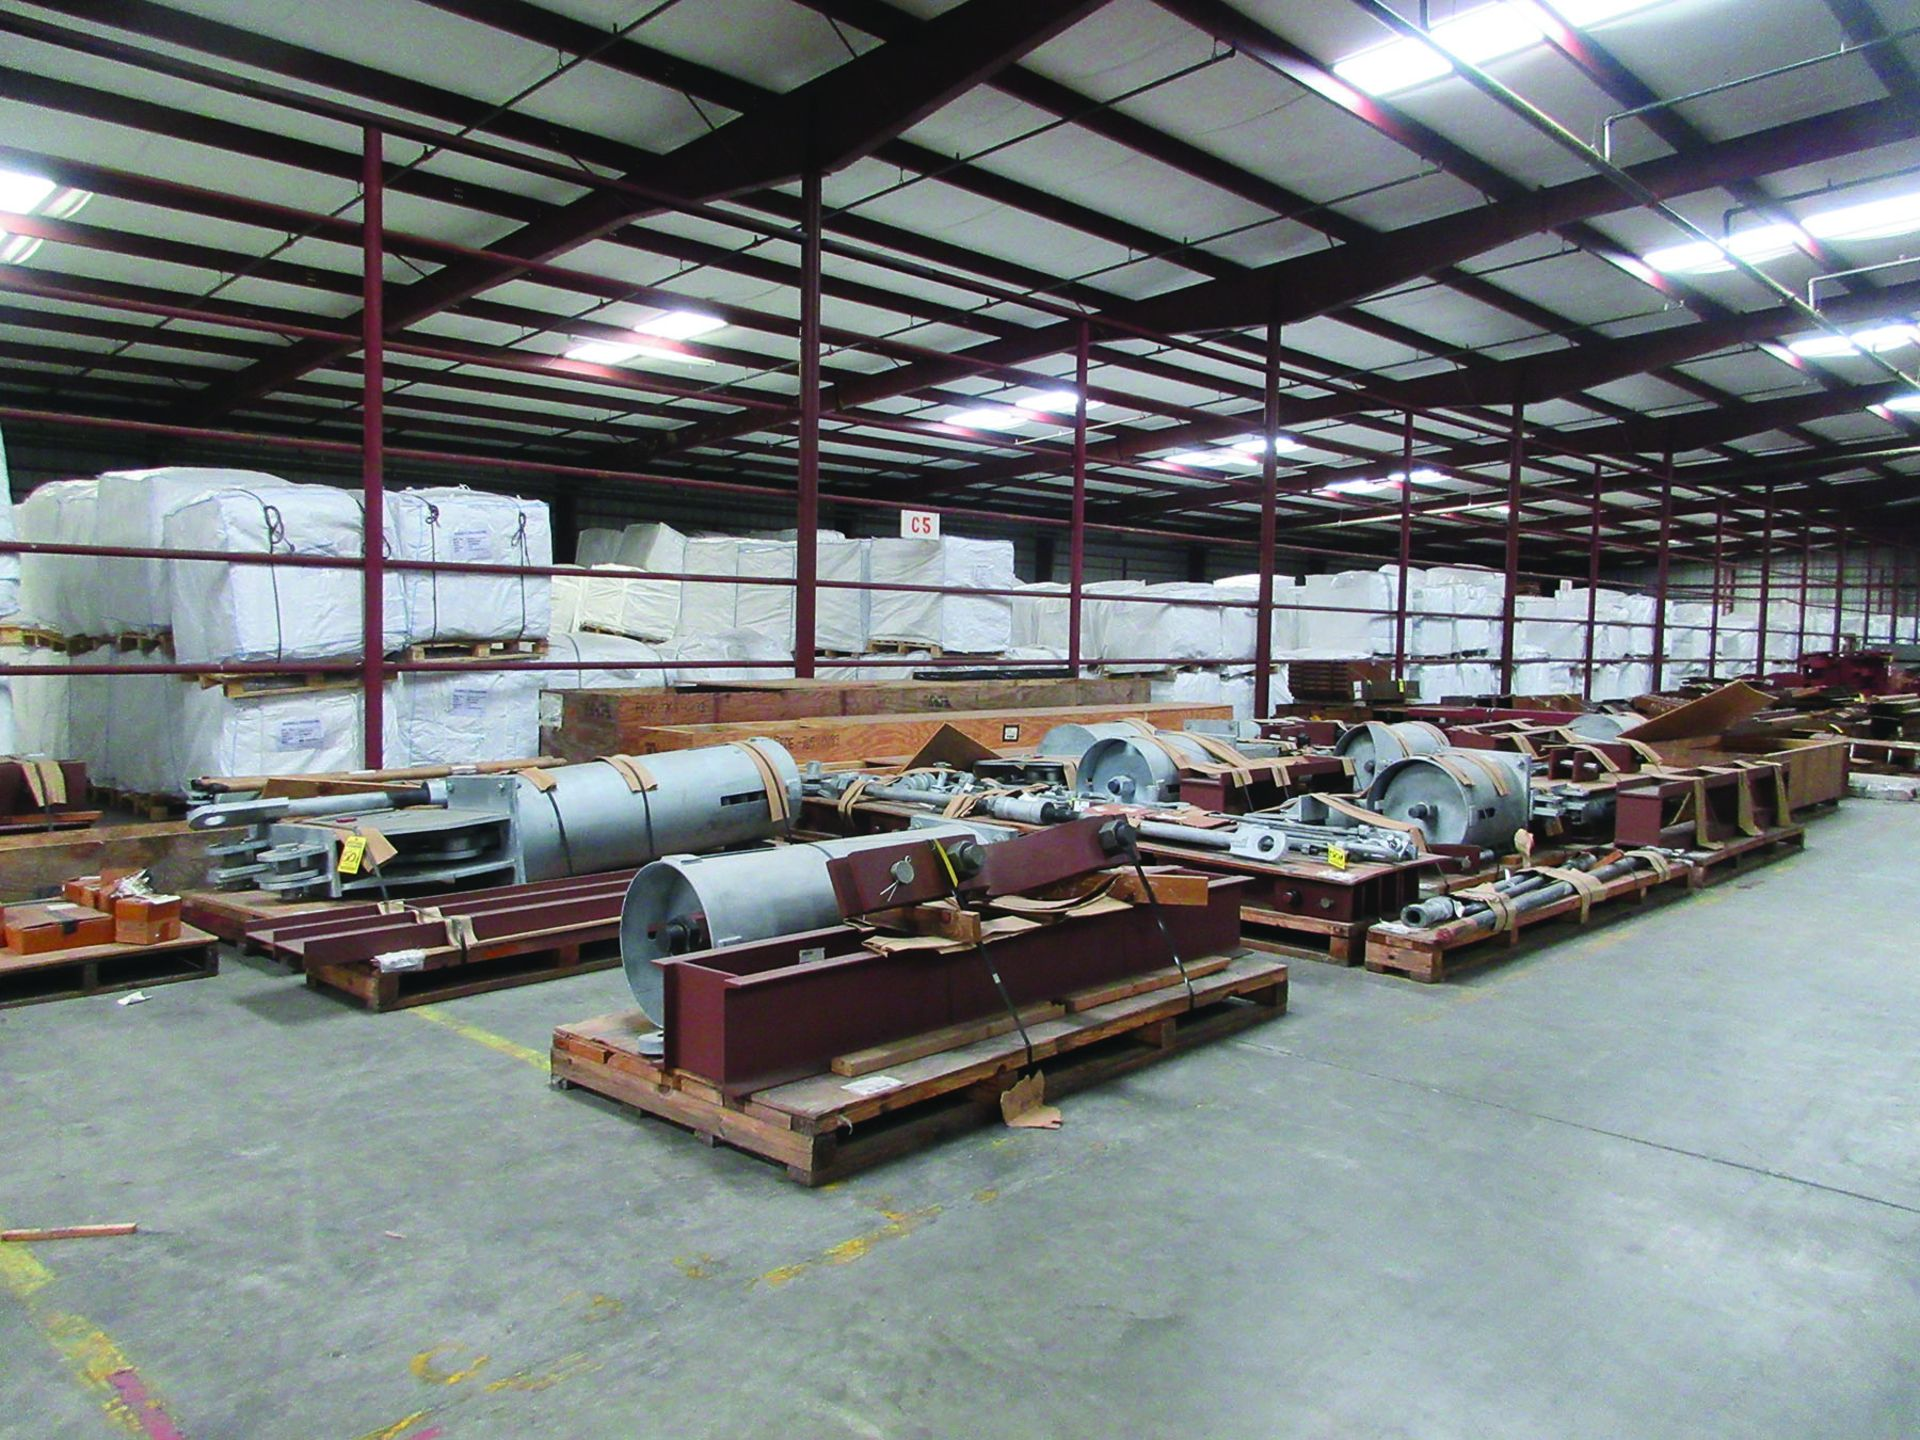 LARGE LOT OF STRUCTURAL STEEL & SPRING CANS, ANGLE IRON, PLATE BRACKETS, BRACING, GRID C5